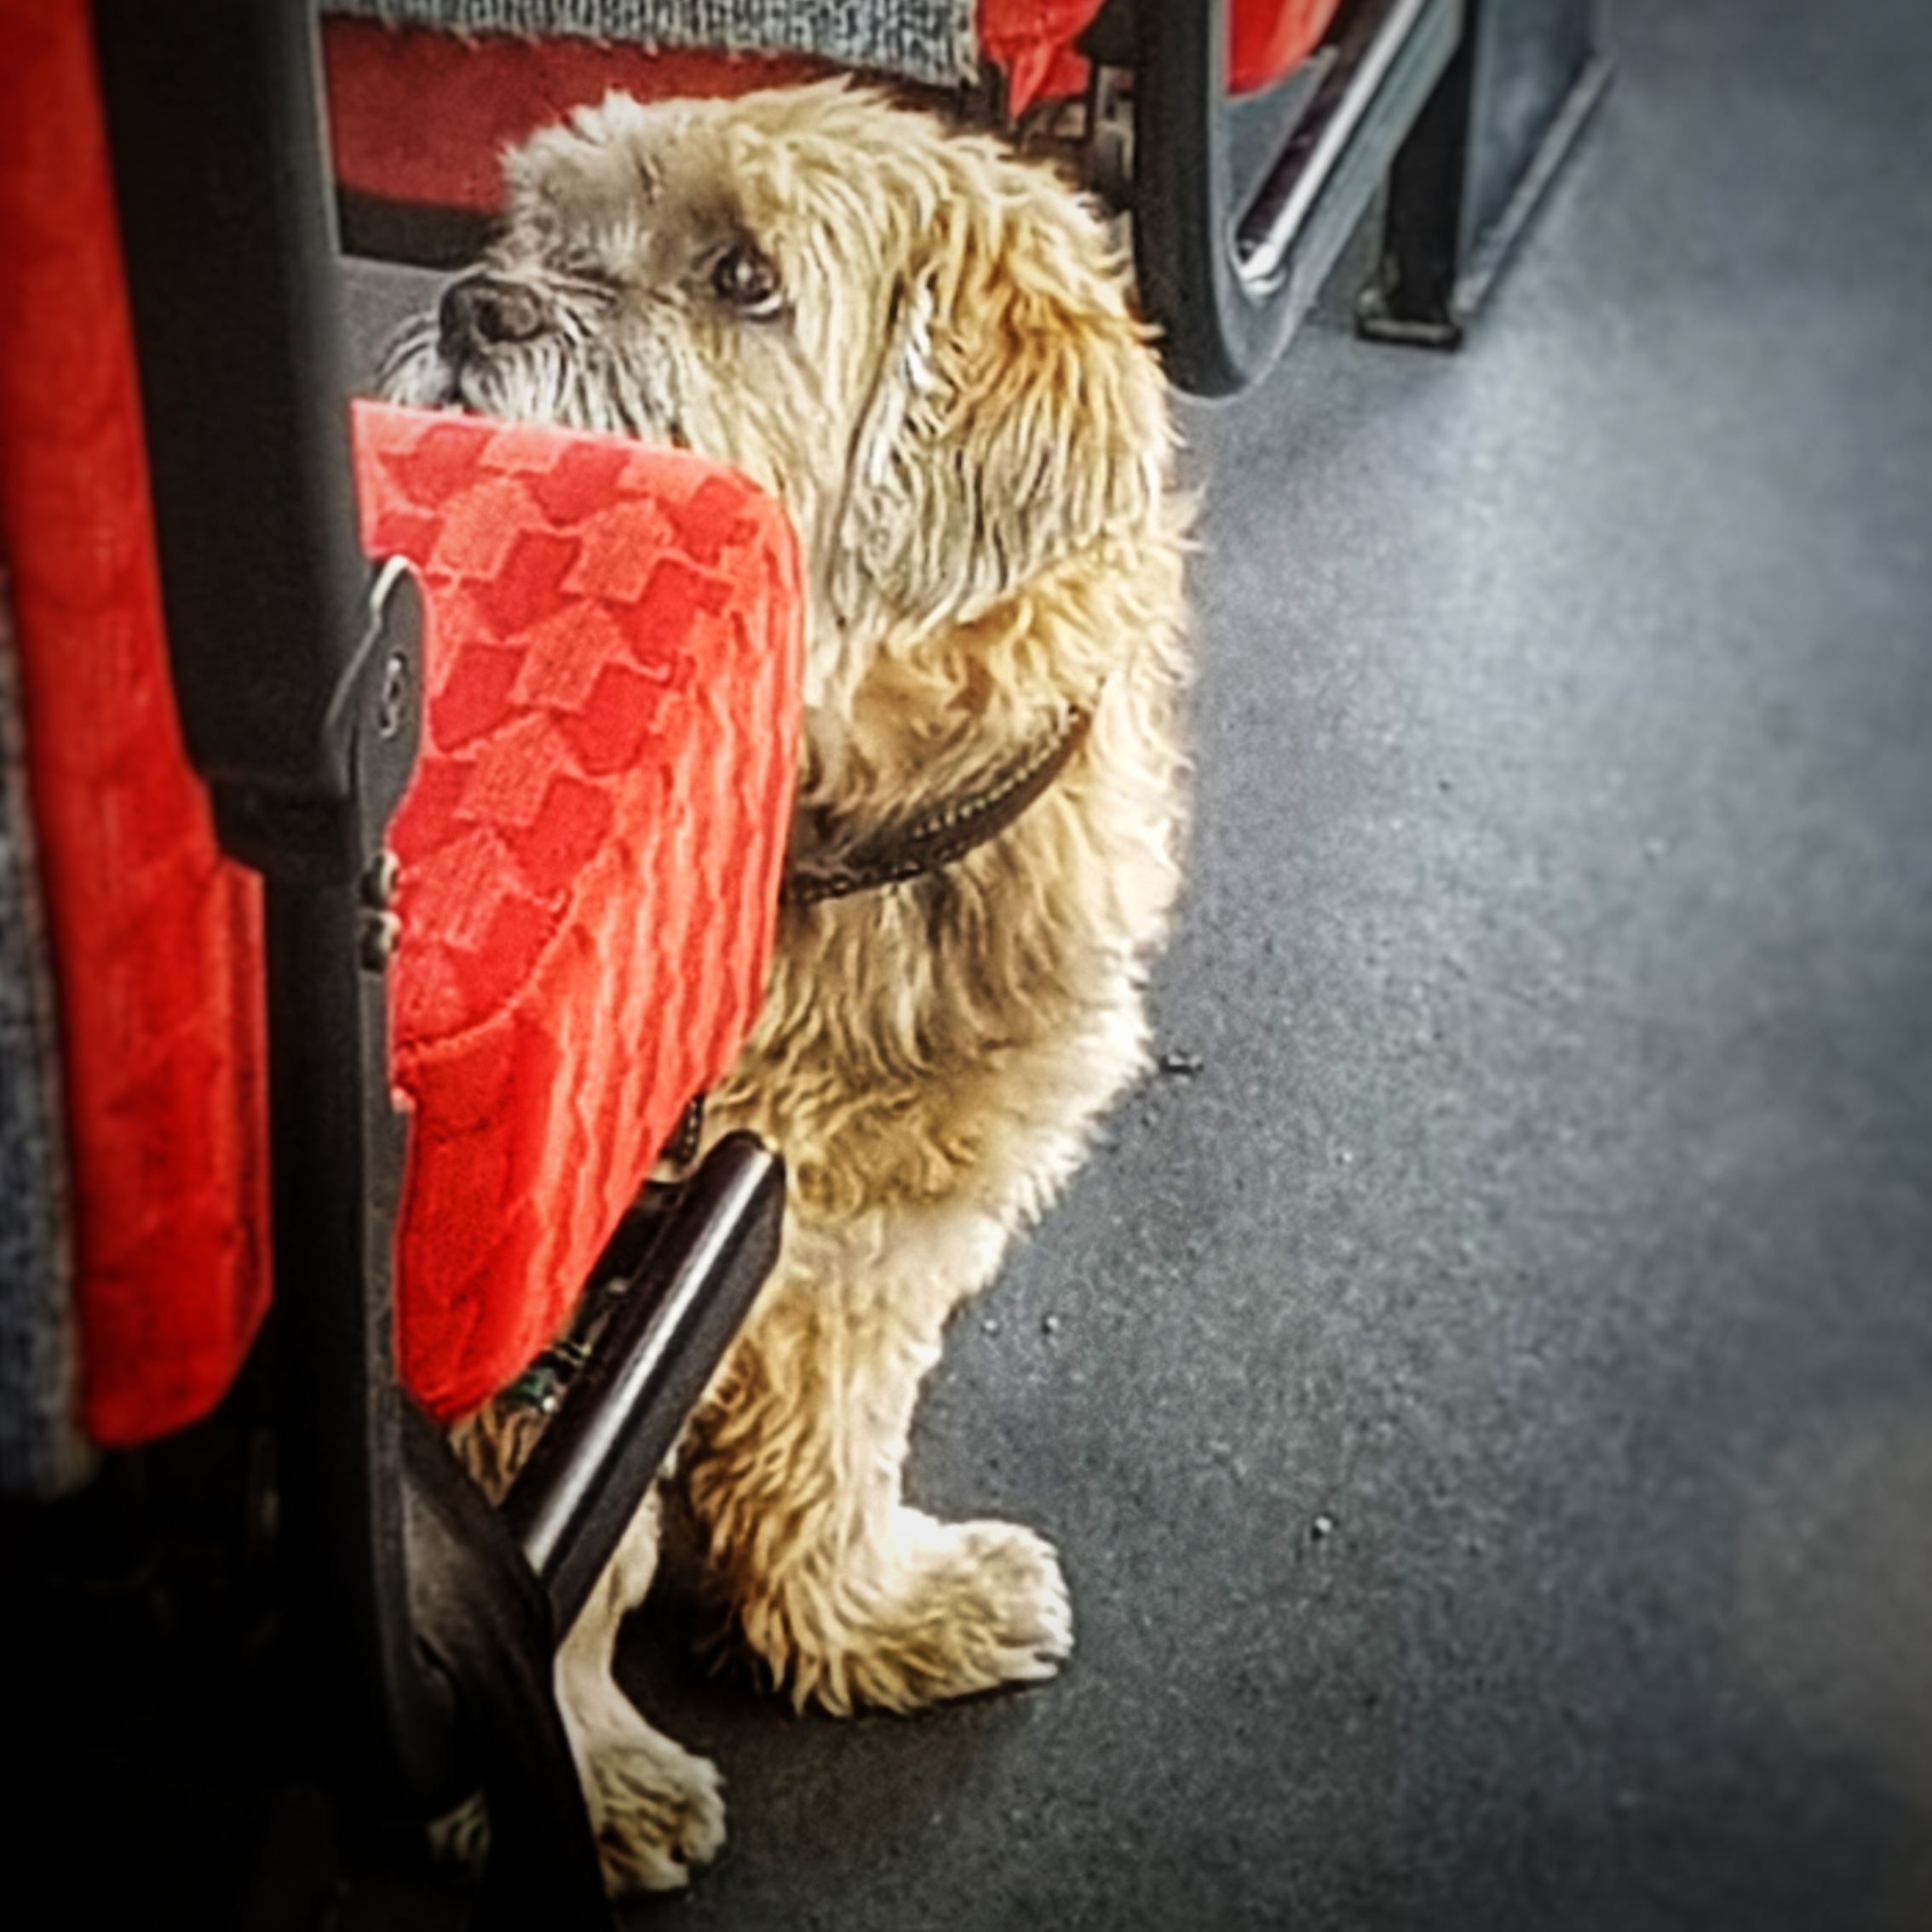 Day 177 - June 26: When is this bus ride over?